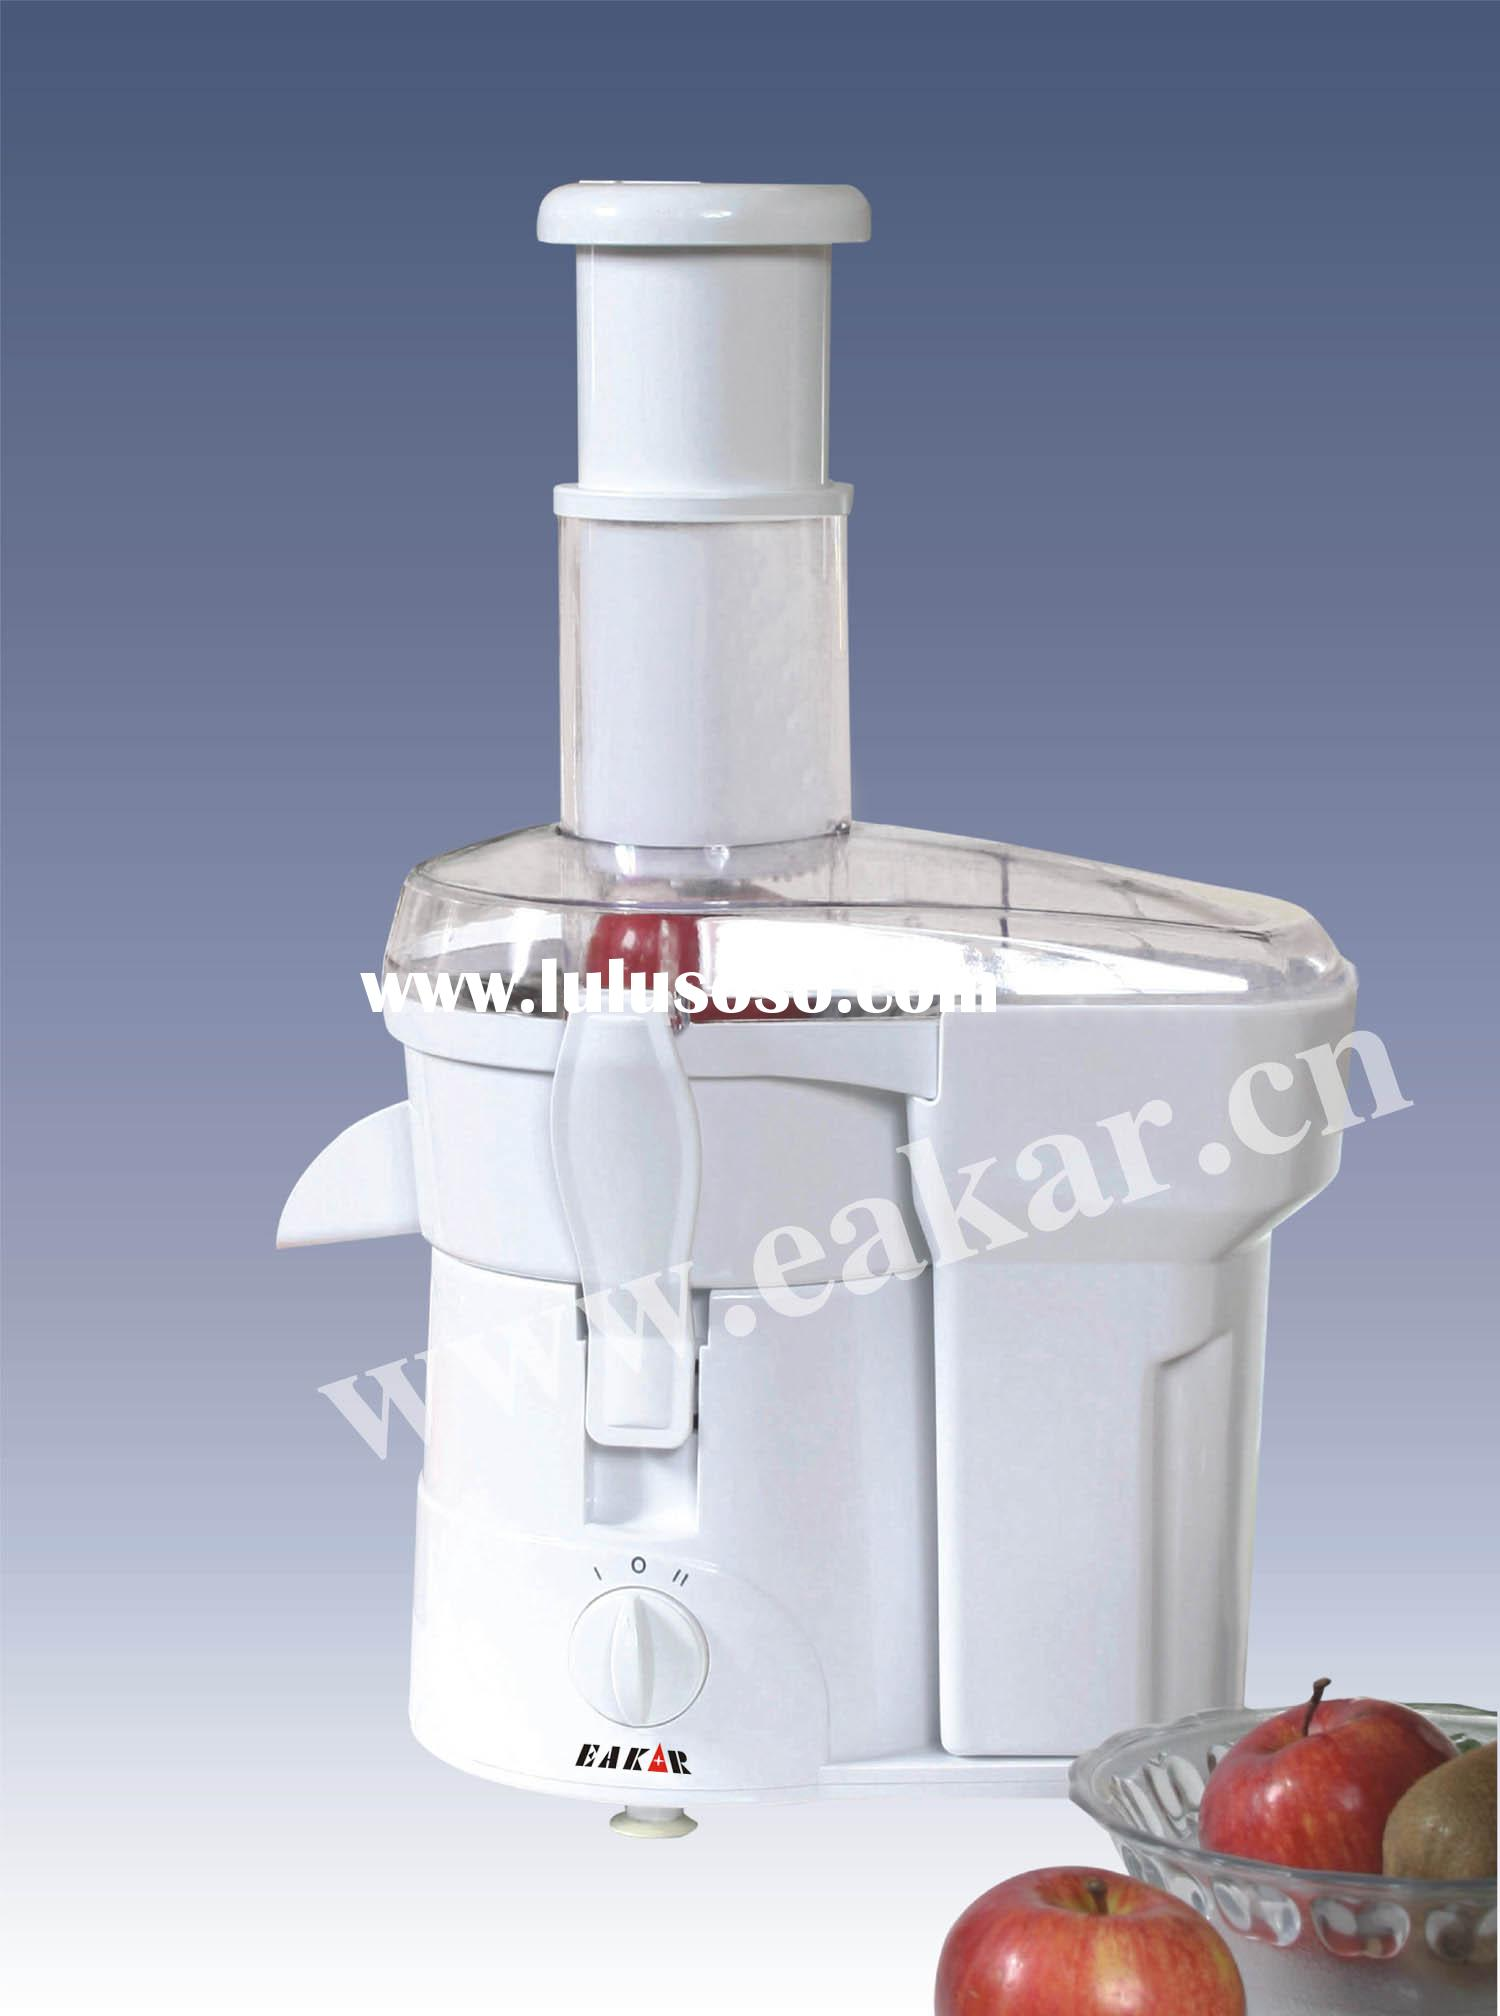 Food processor juicer blender for sale price china for Alpine cuisine power juicer